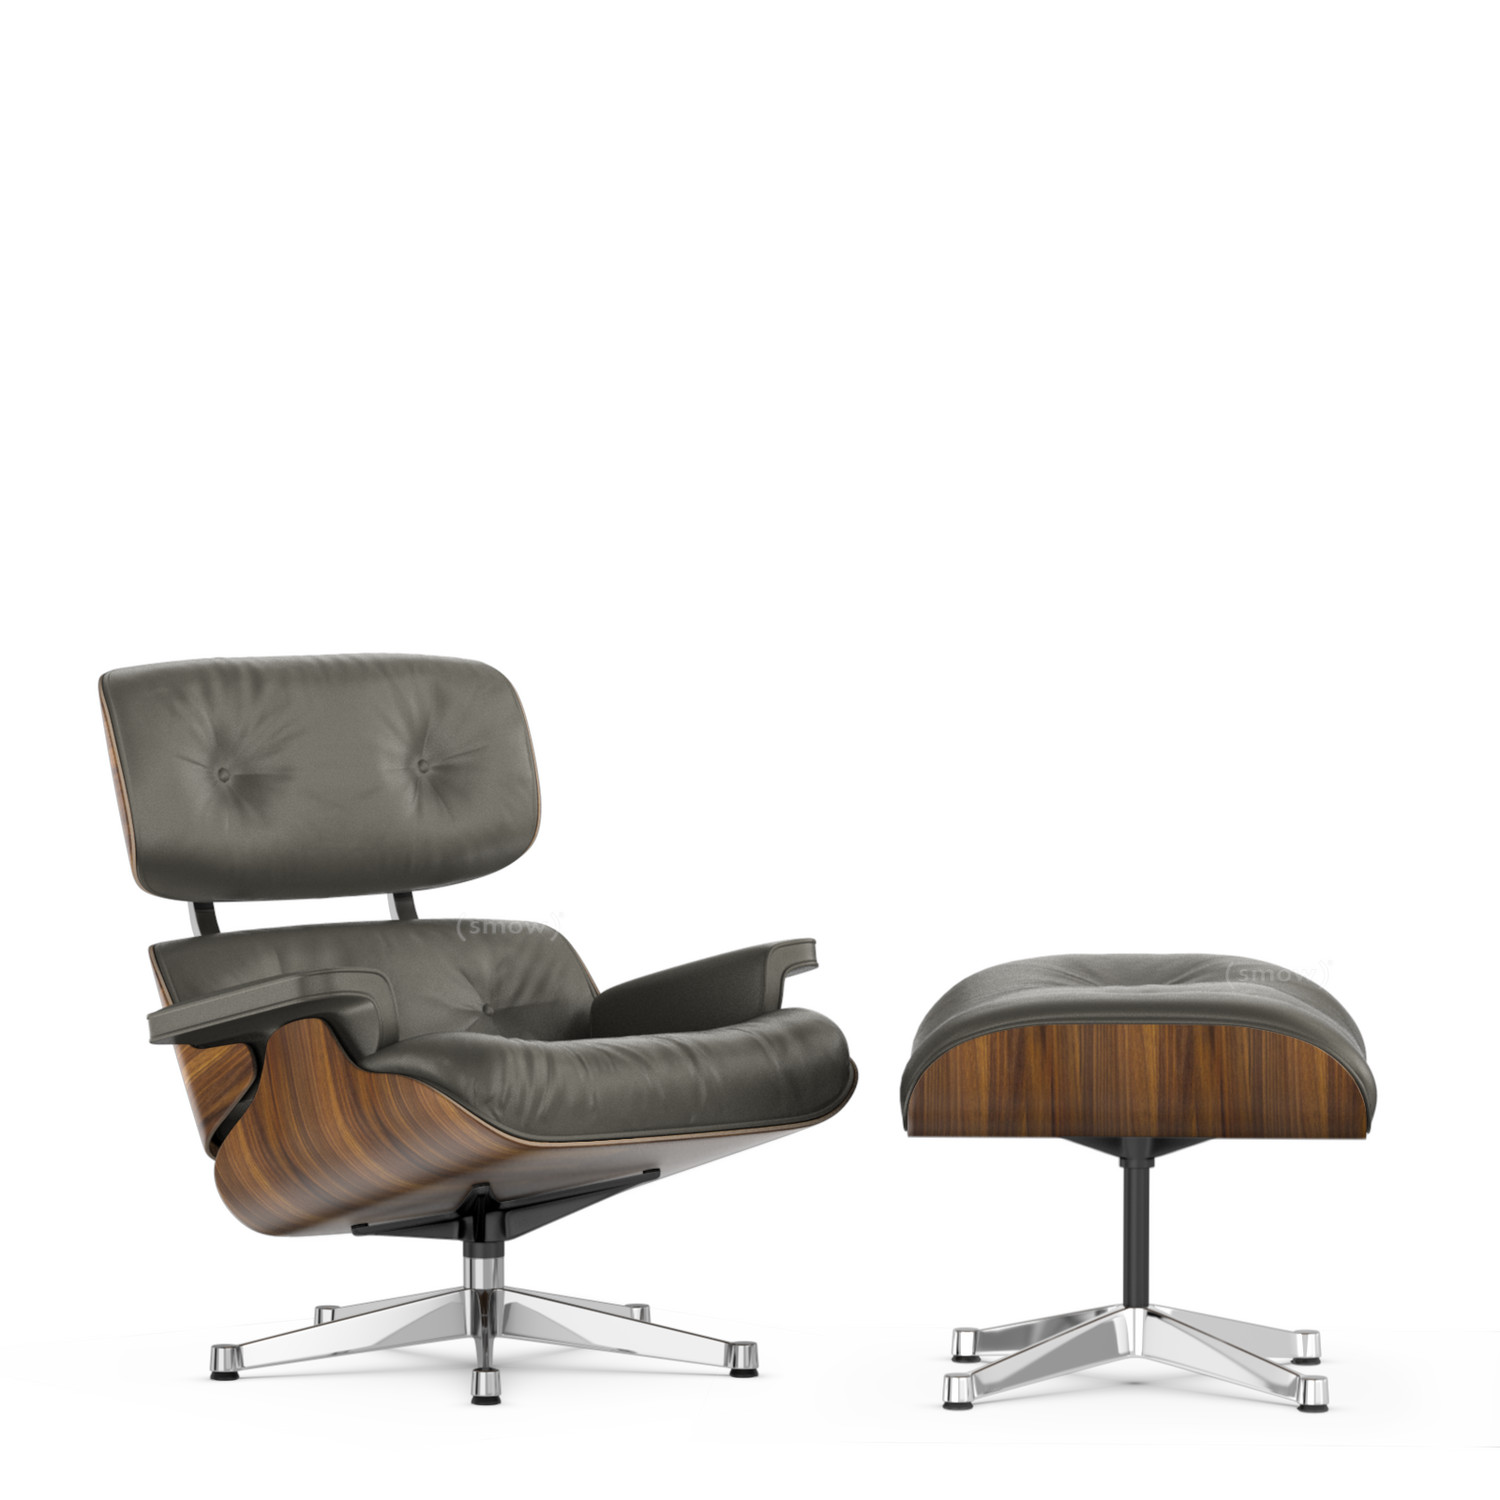 Ordinaire Lounge Chair U0026 Ottoman   Beauty Versions Walnut With Black  Pigmentation|Umbra Grey|84